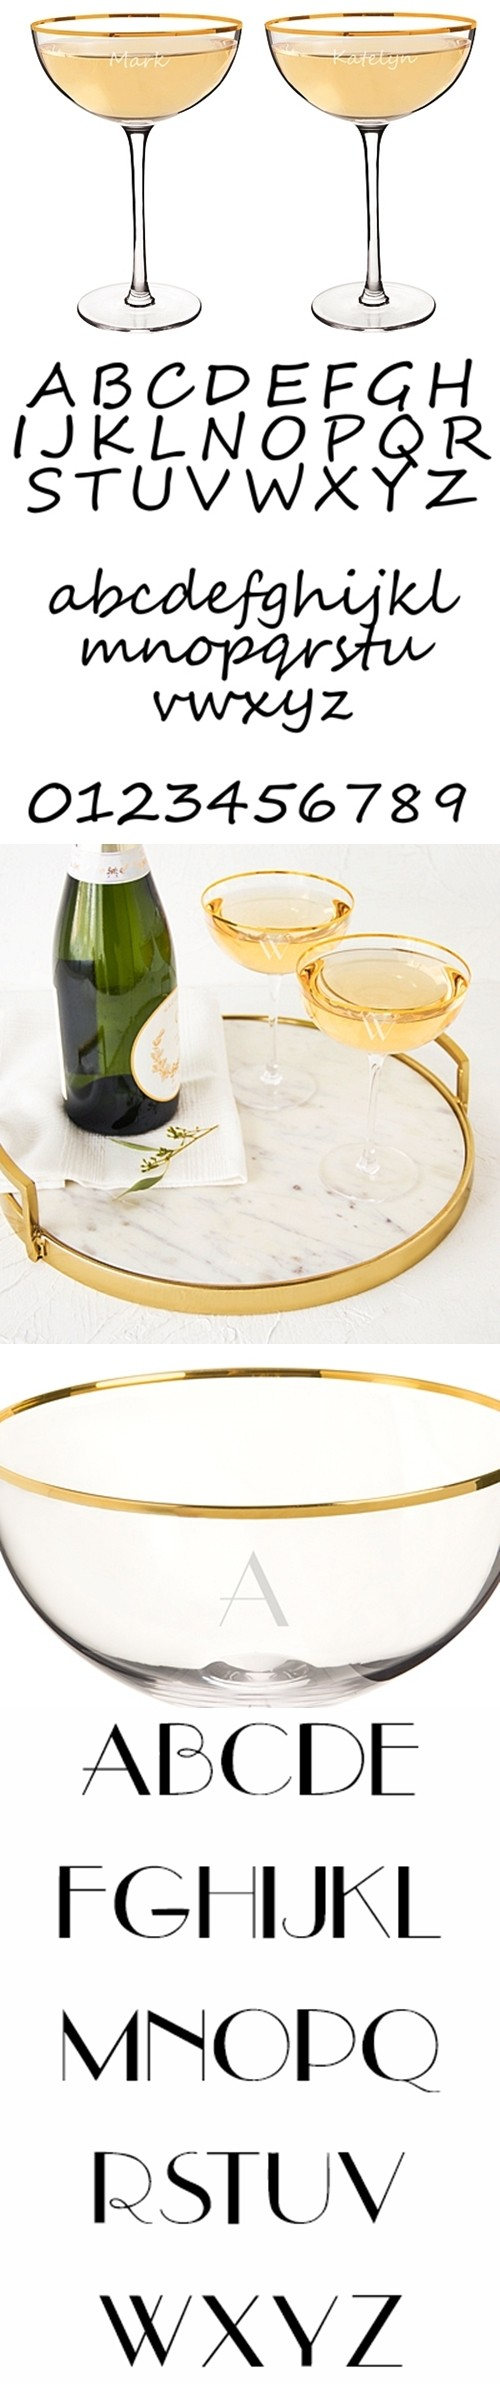 Cathy's Concepts Personalized 8 oz Gold-Rimmed Coupe Flutes (Set of 2)